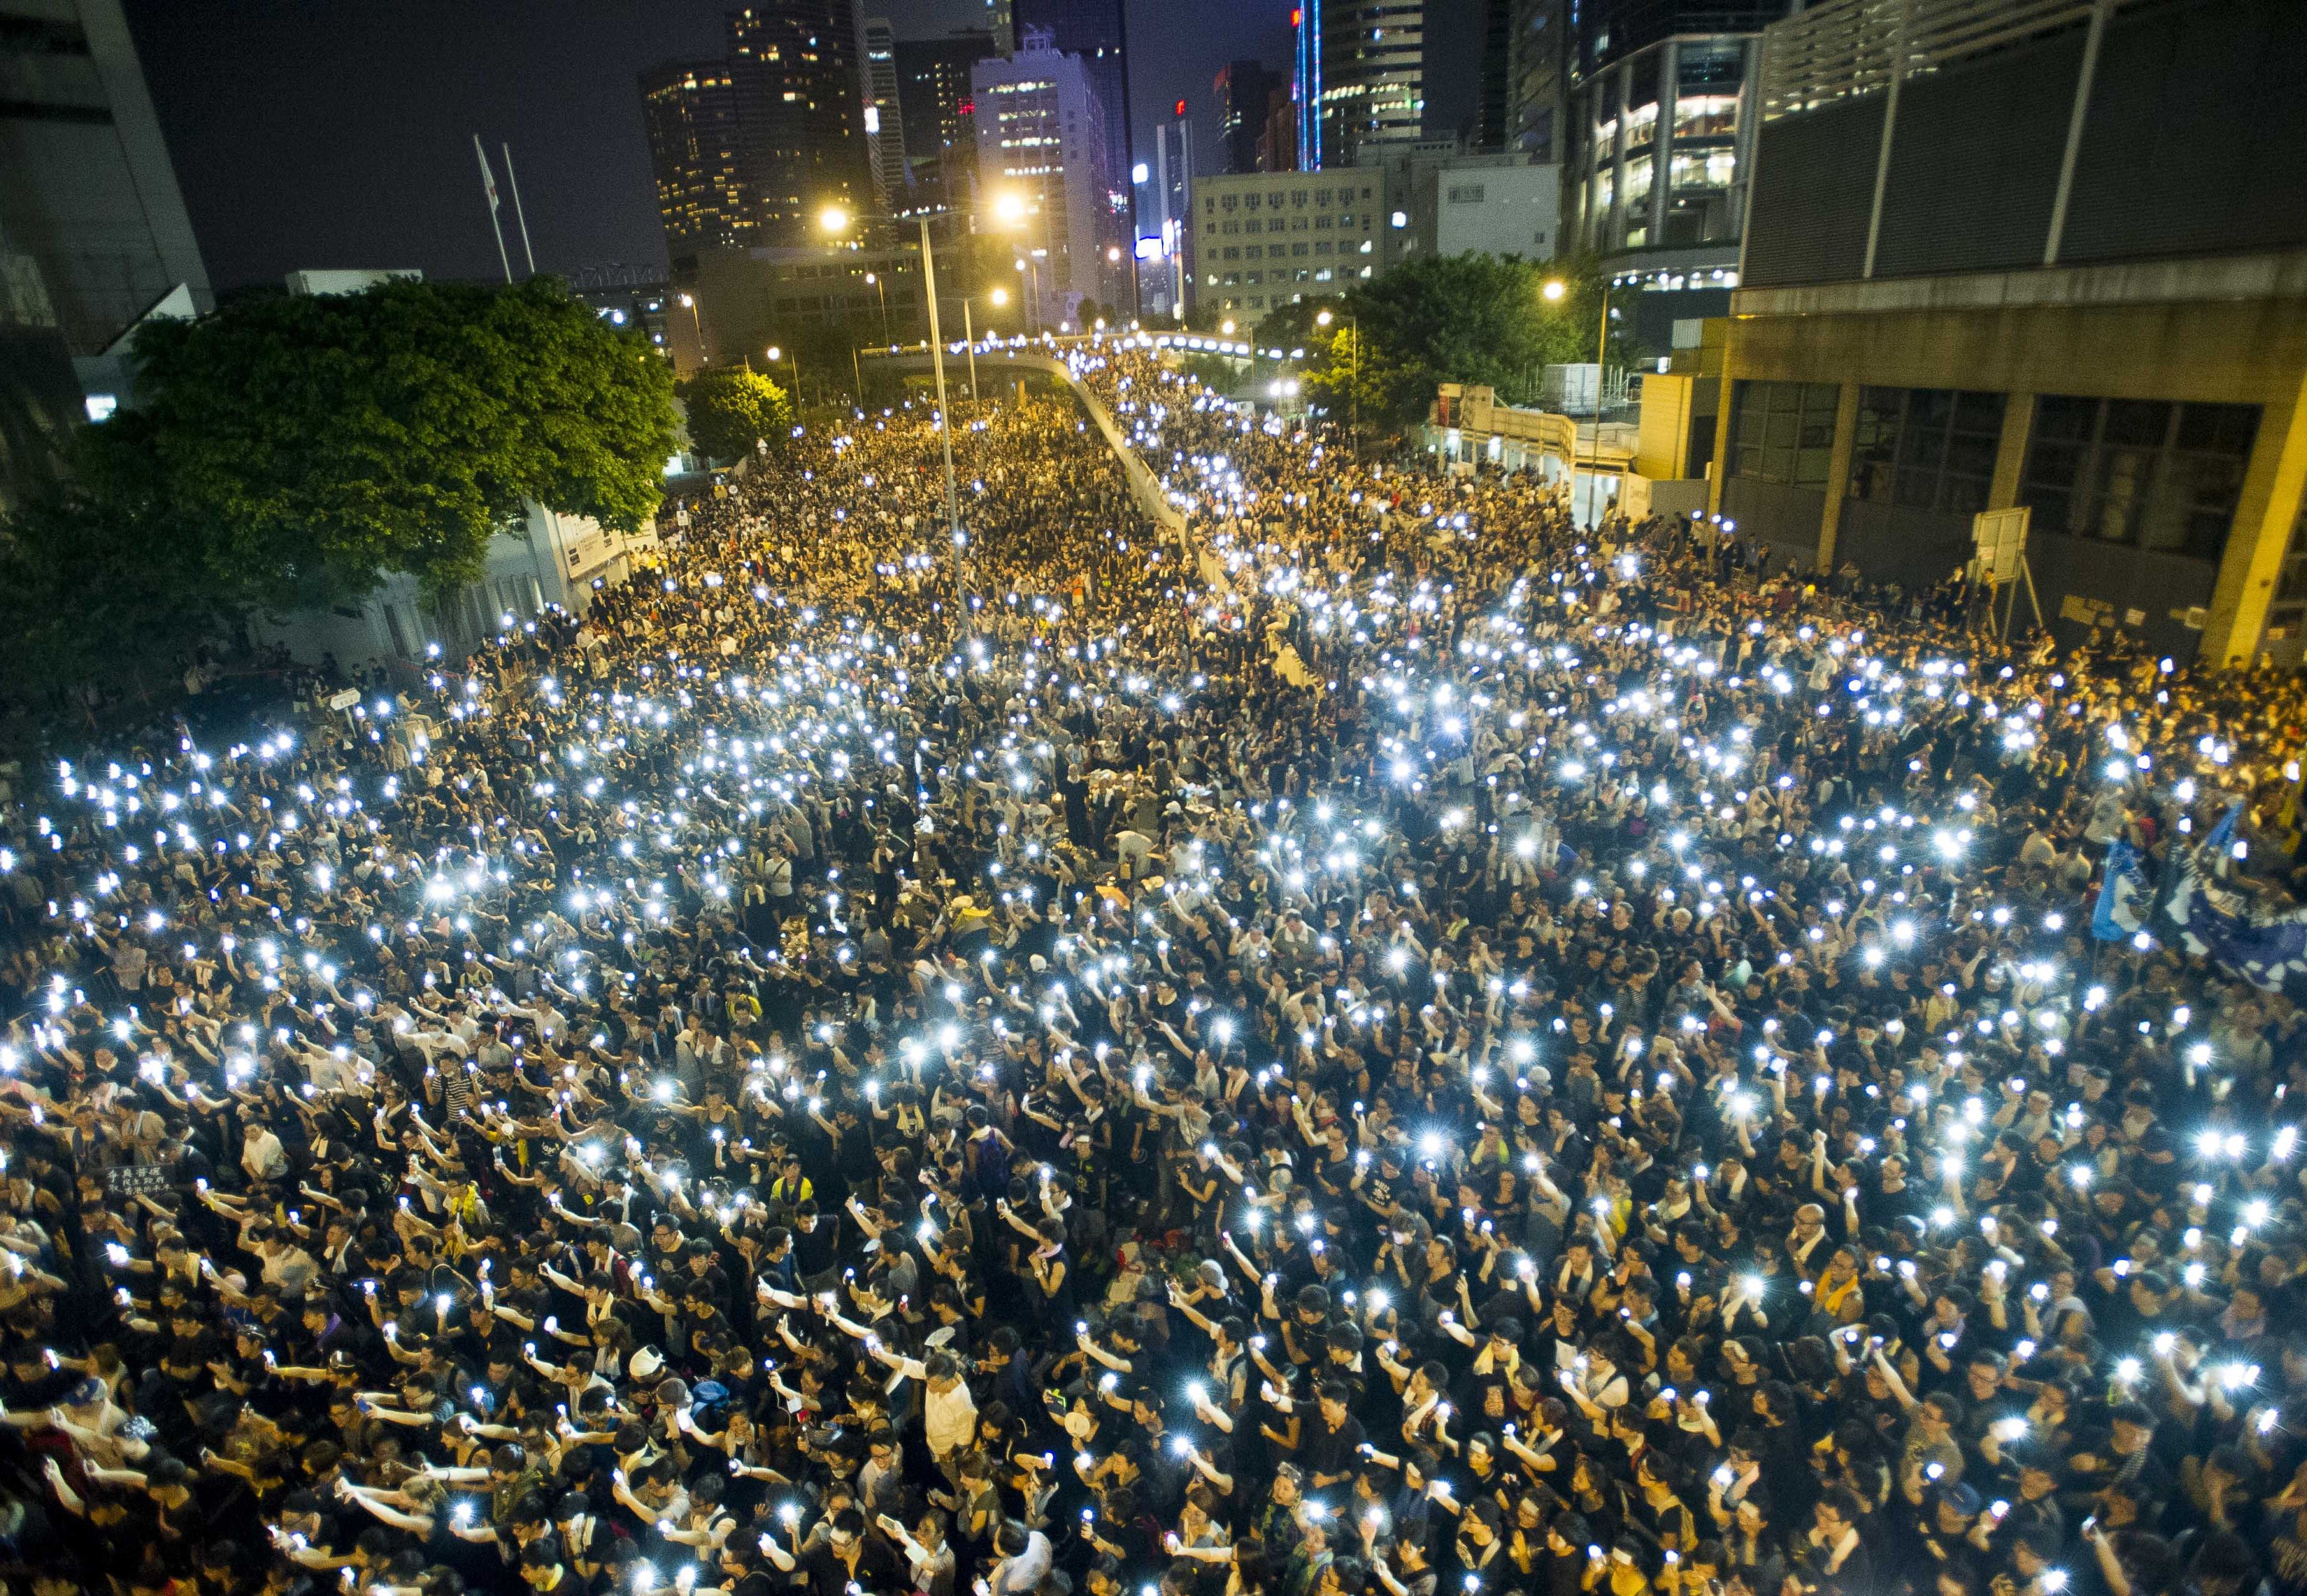 Protestors hold up their cellphones in a display of solidarity during a protest outside the headquarters of Legislative Council in Hong Kong on Sept. 29, 2014.